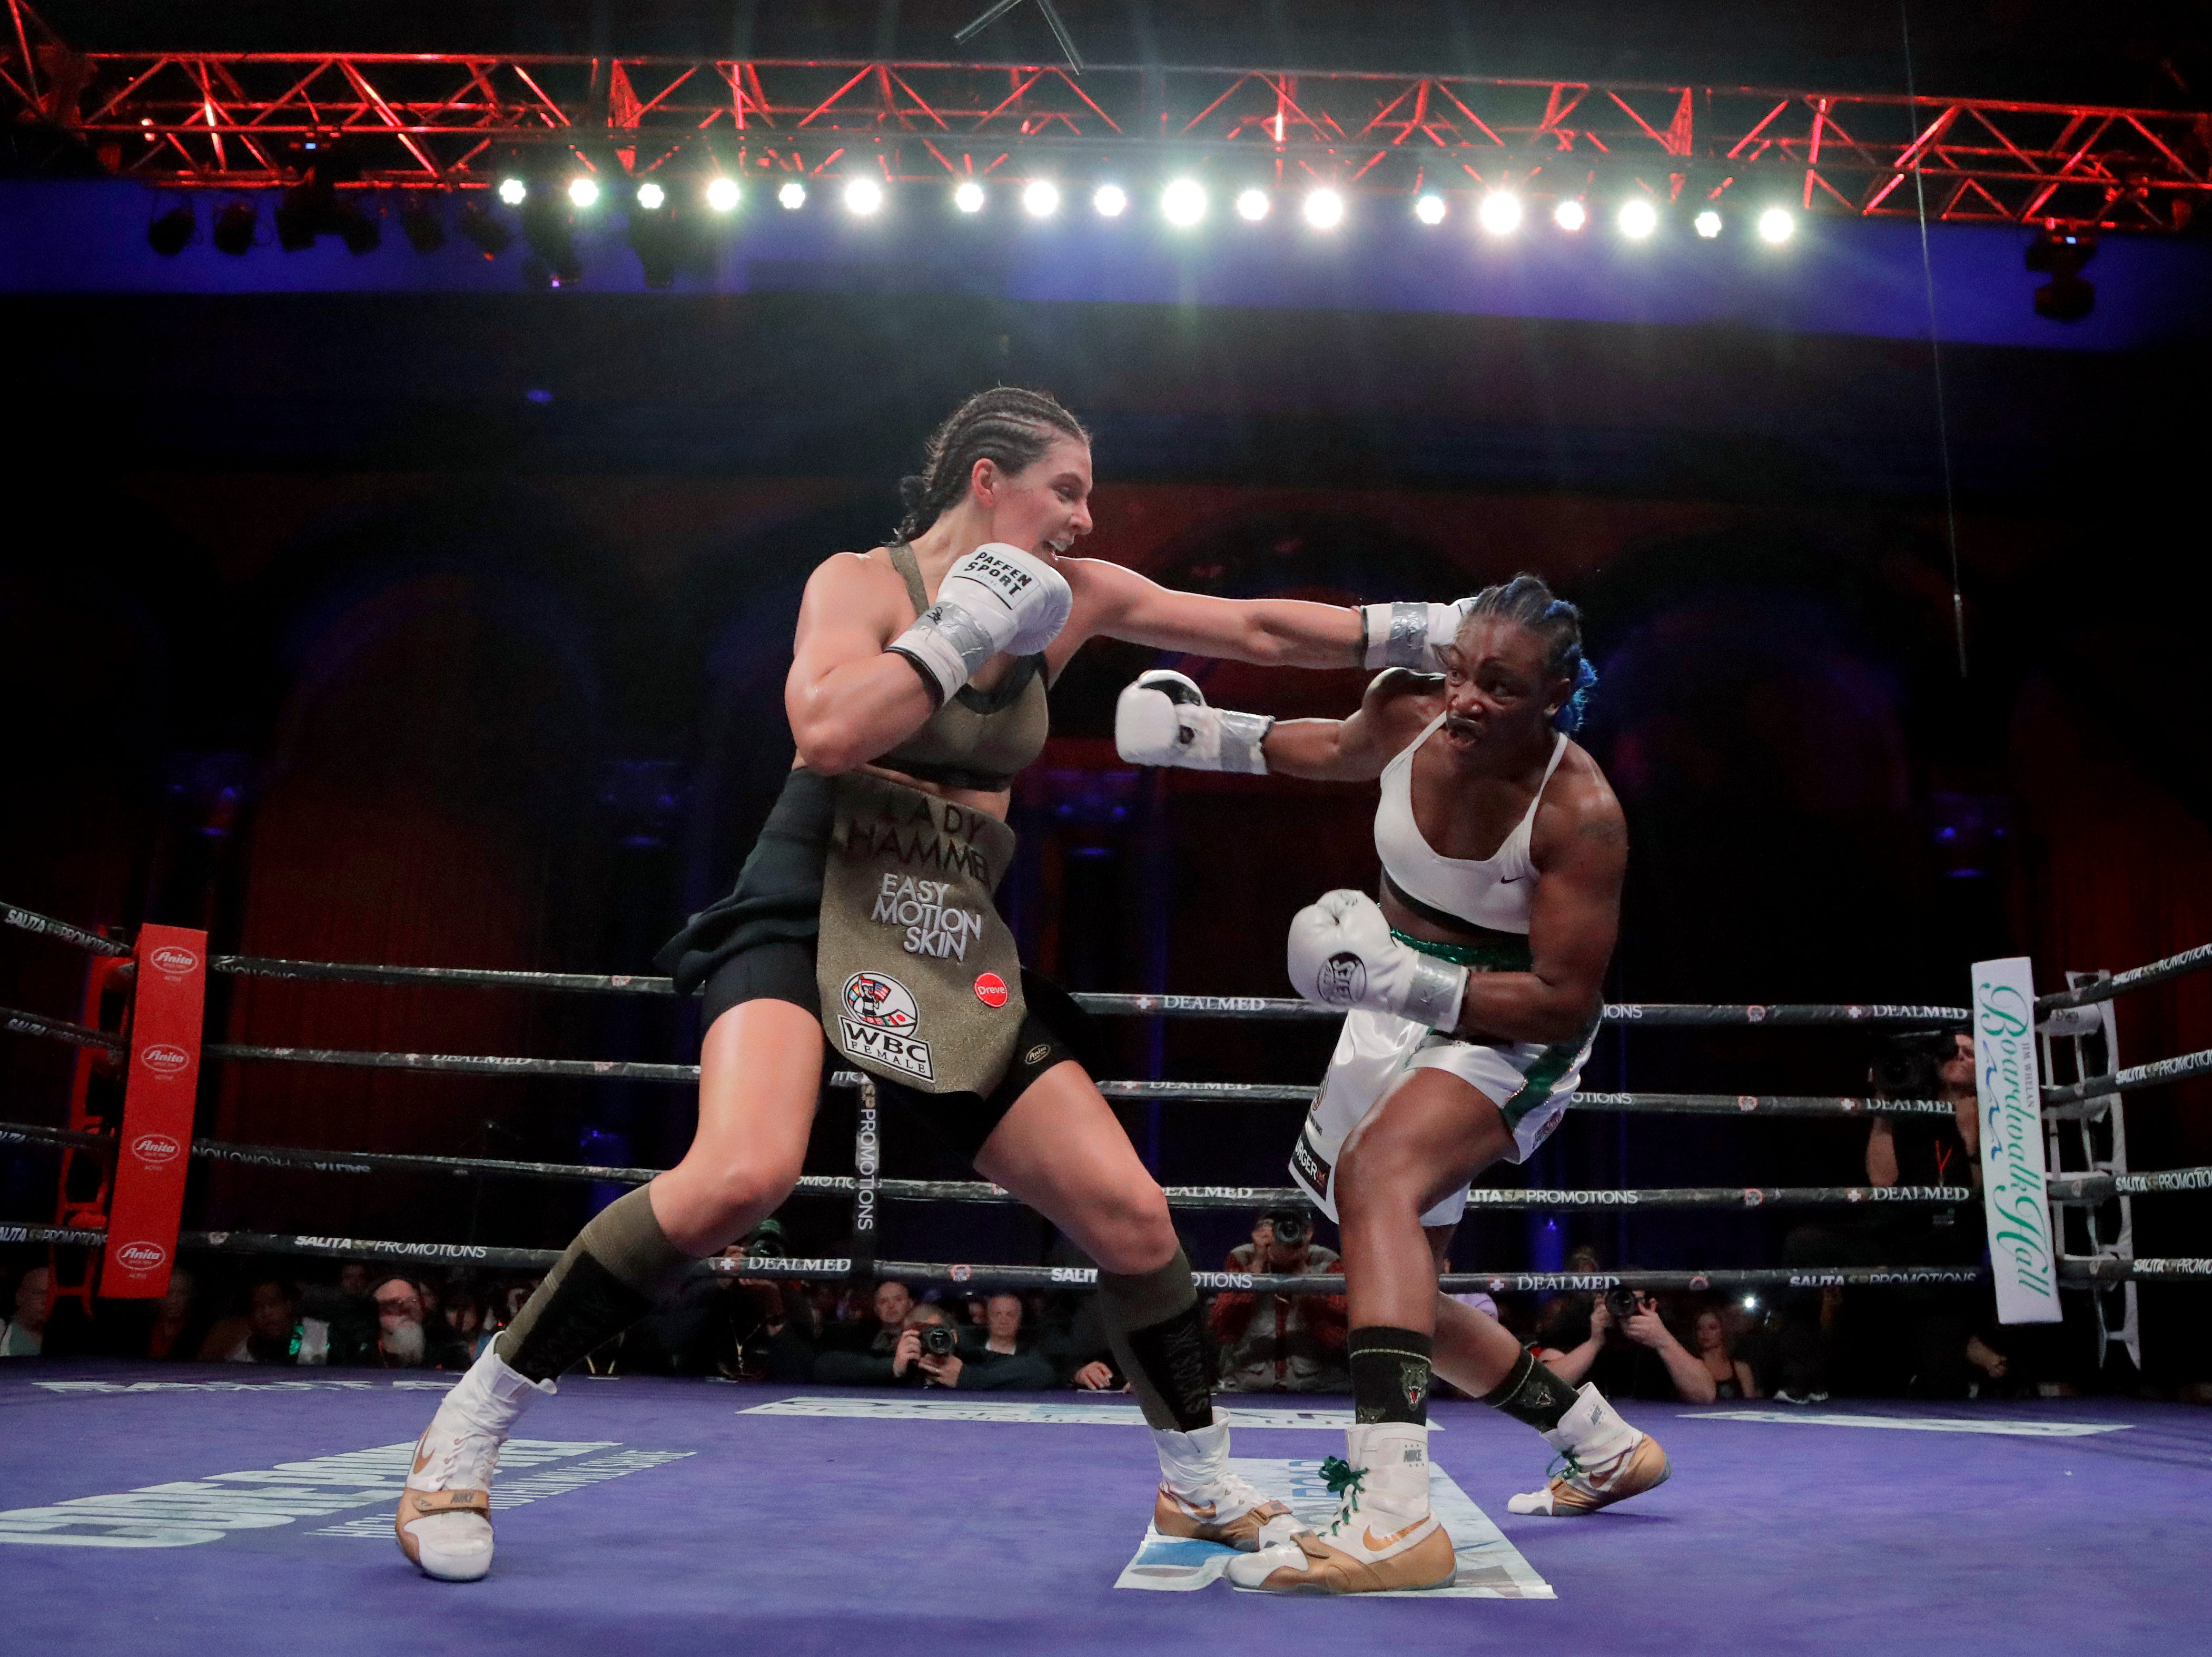 Christina Hamner, left, and Claressa Shields fight during the third round of a women's world middleweight championship boxing bout Saturday, April 13, 2019, in Atlantic City, N.J.